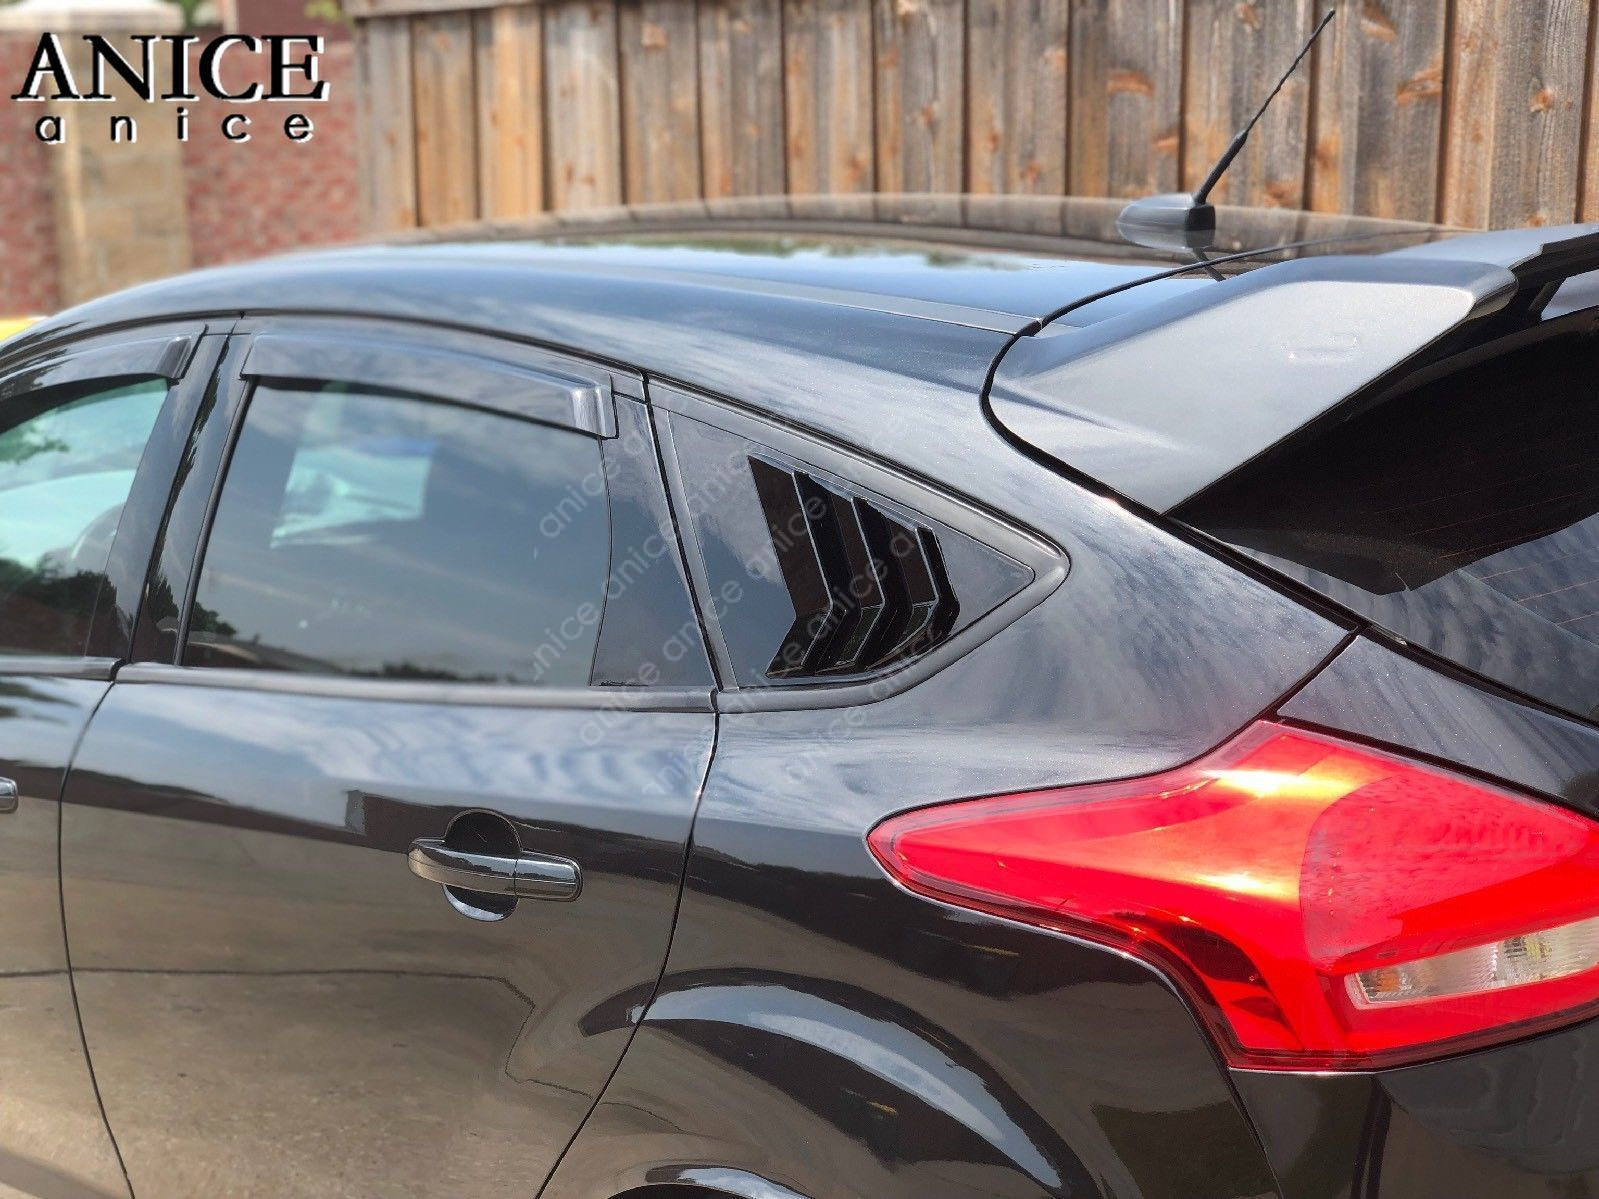 fit for Ford Focus ST RS Hatchback Carbon fiber color Window Side Louvers Vent 2012 2013 2014 2015 2016 2017 2018 ABS in Chromium Styling from Automobiles Motorcycles